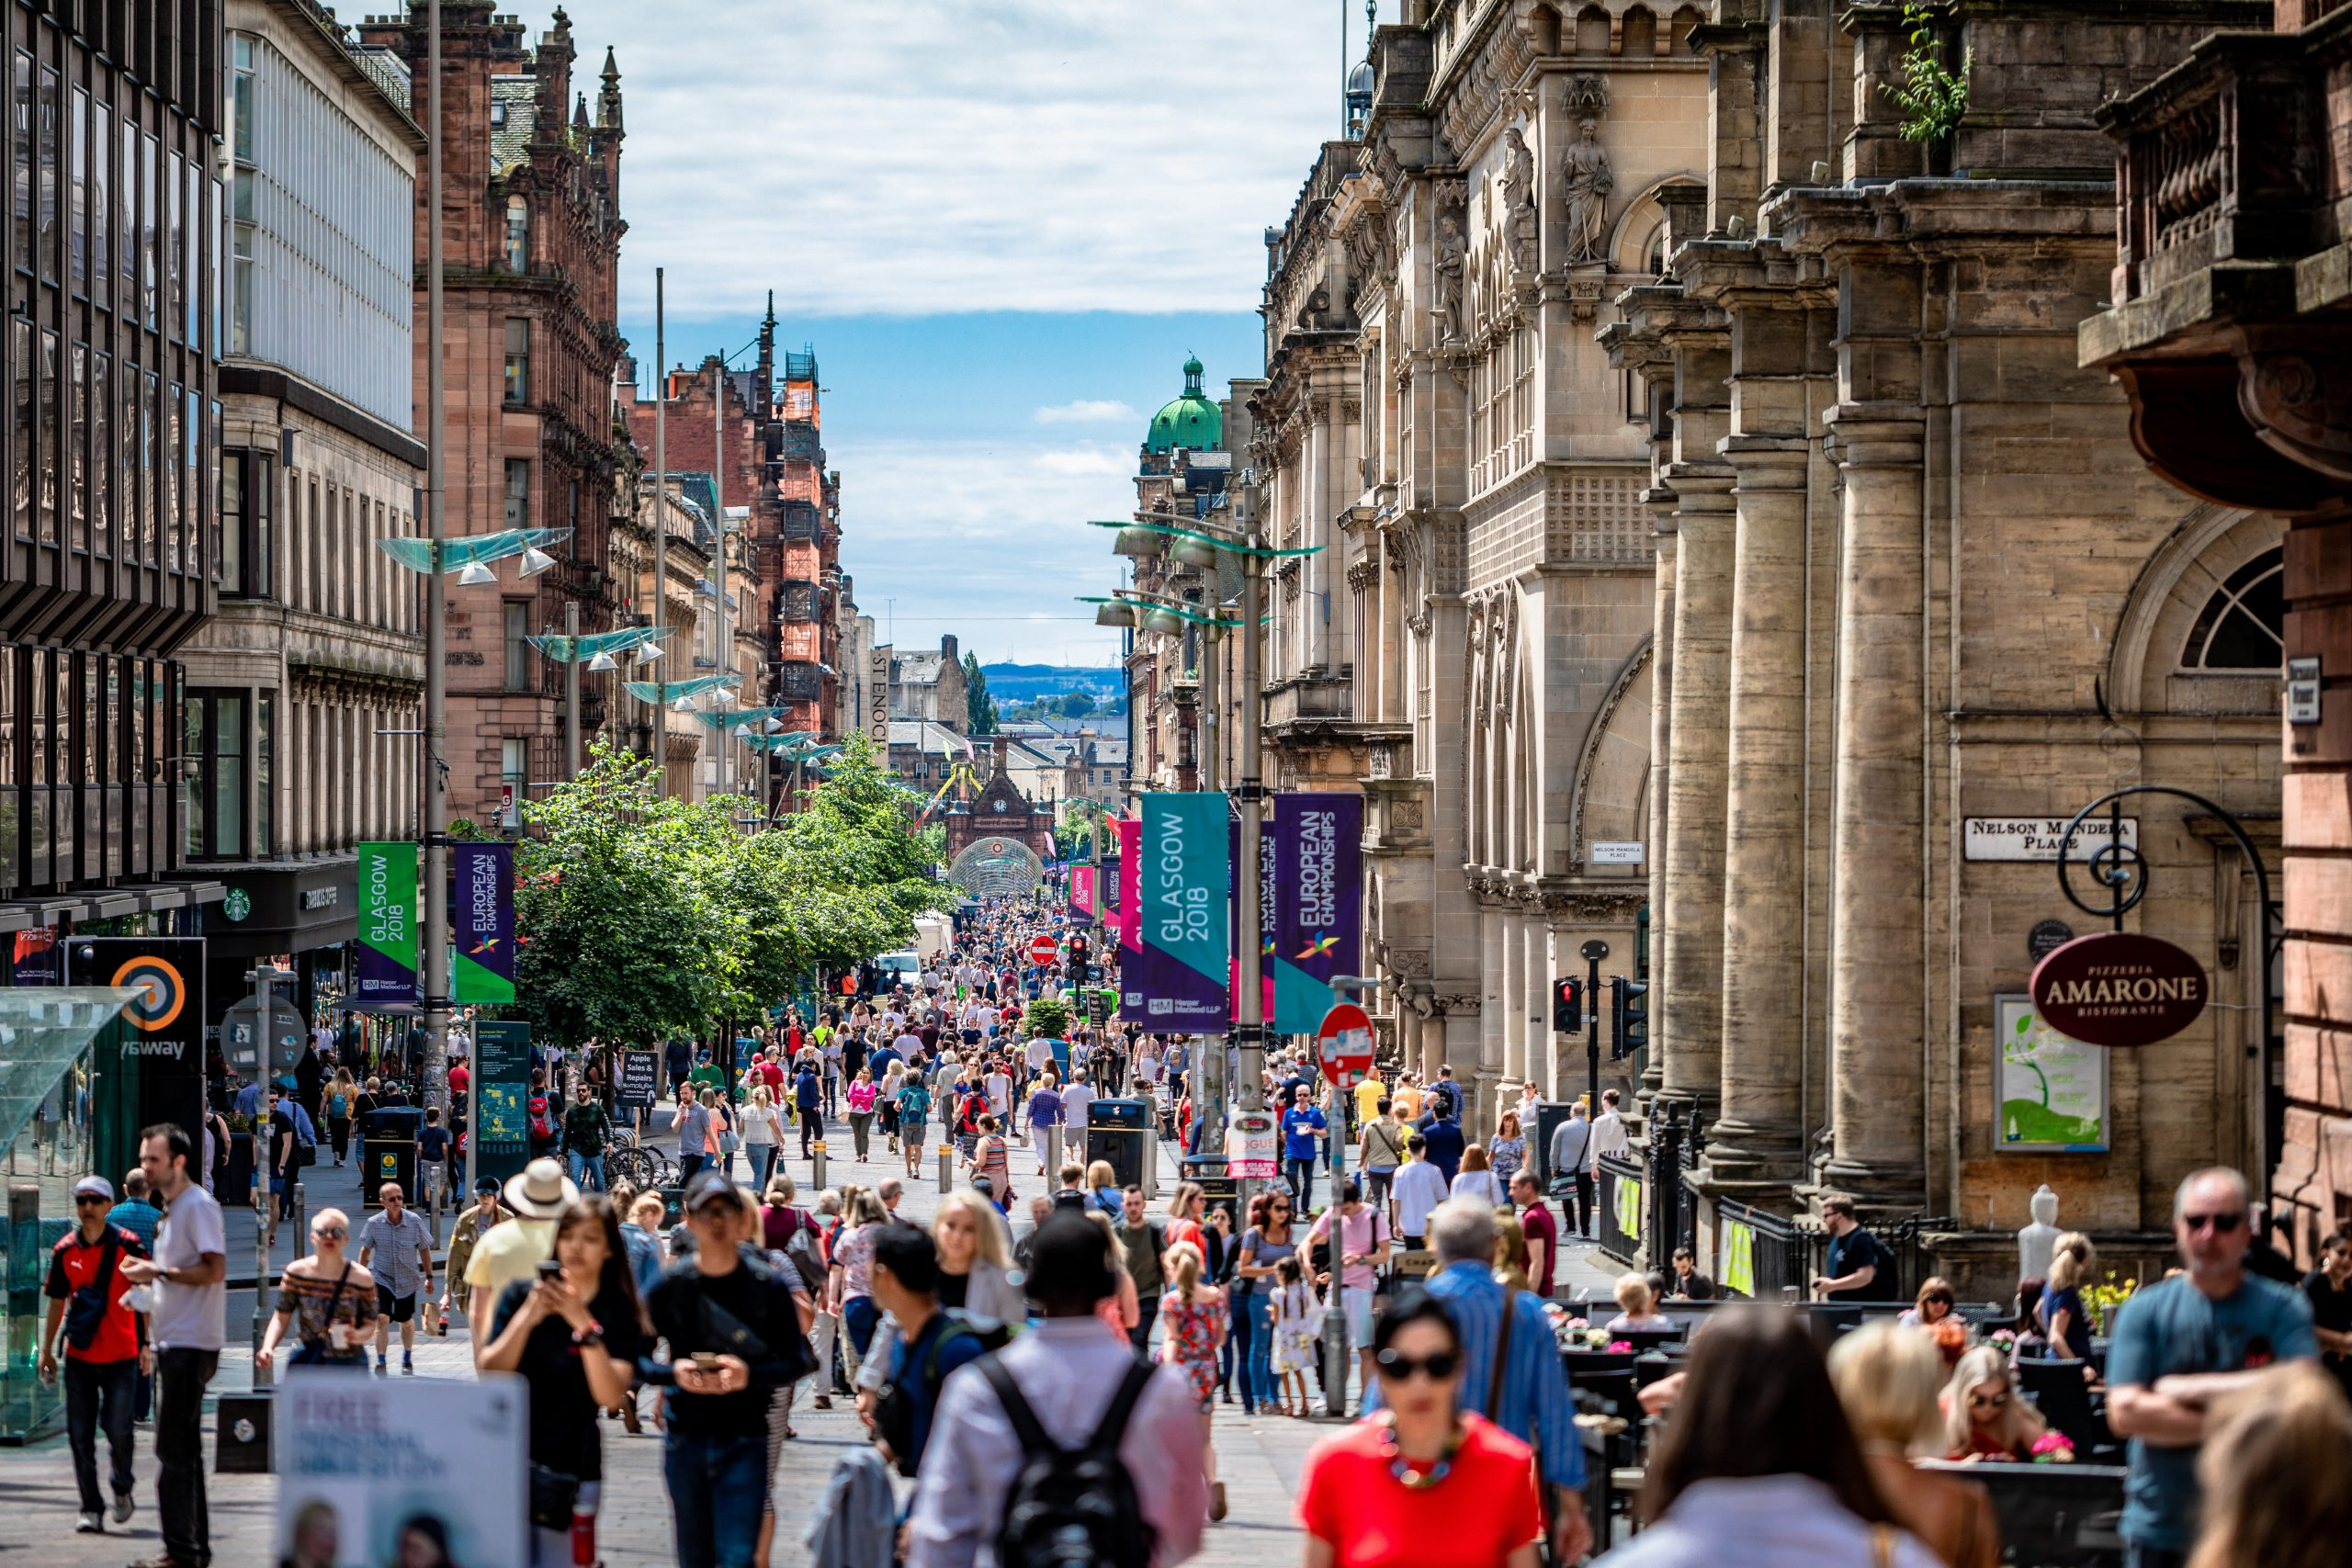 Glasgow high street Photo by Artur Kraft on Unsplash